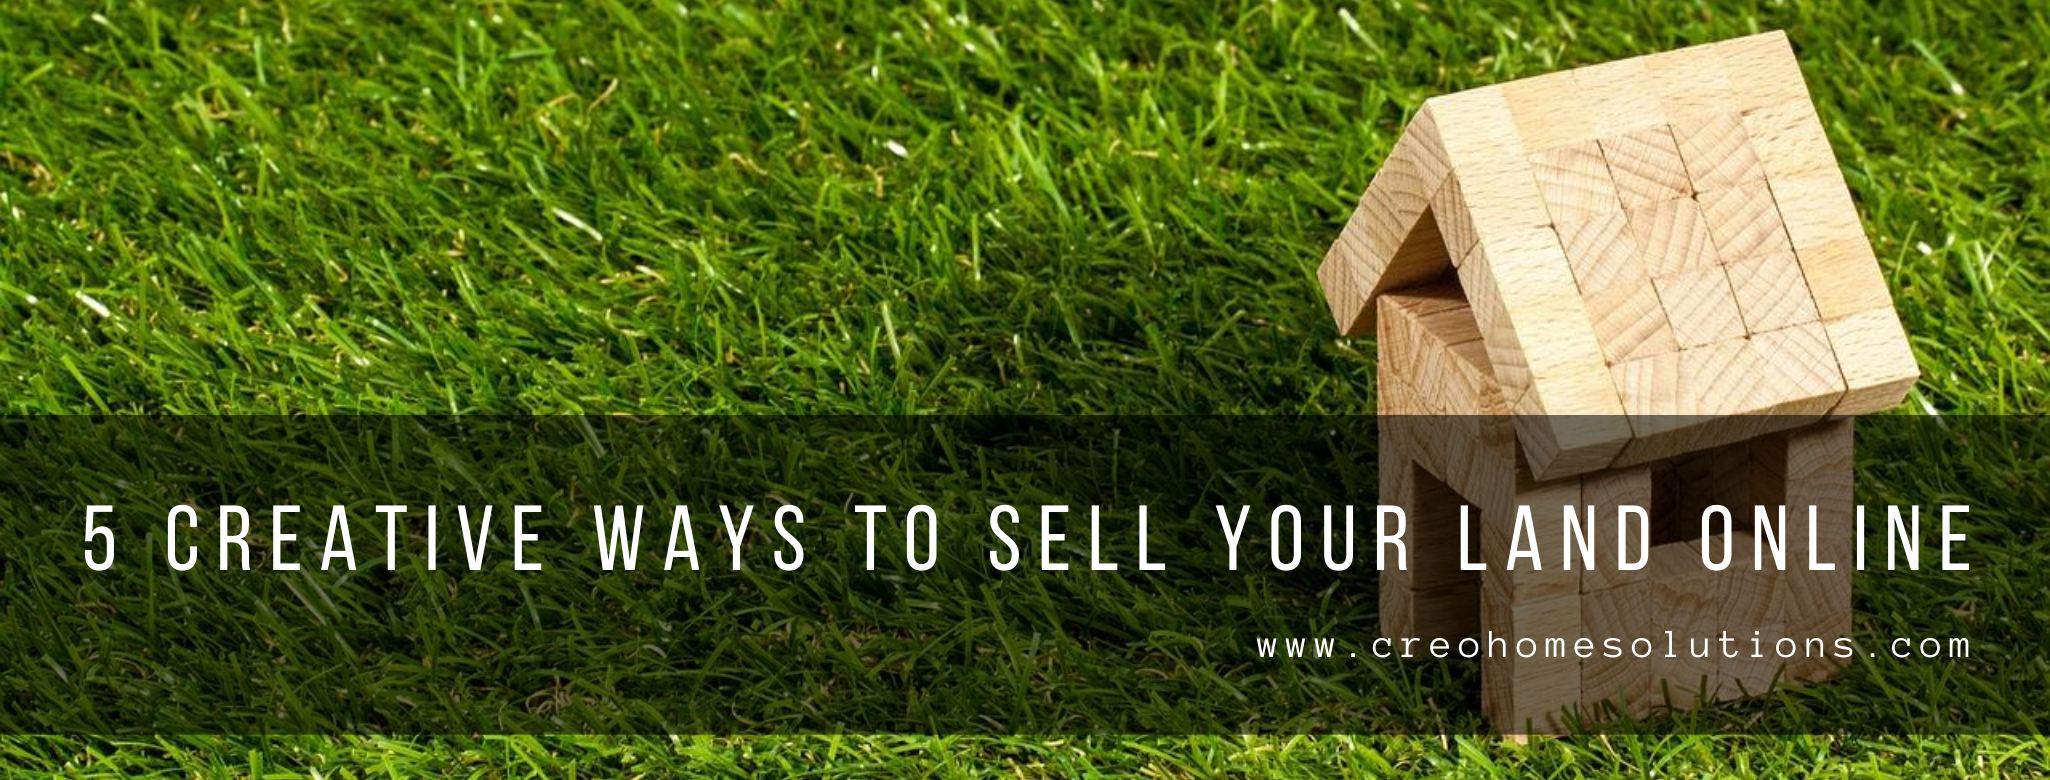 We buy properties in Perry Hall MD